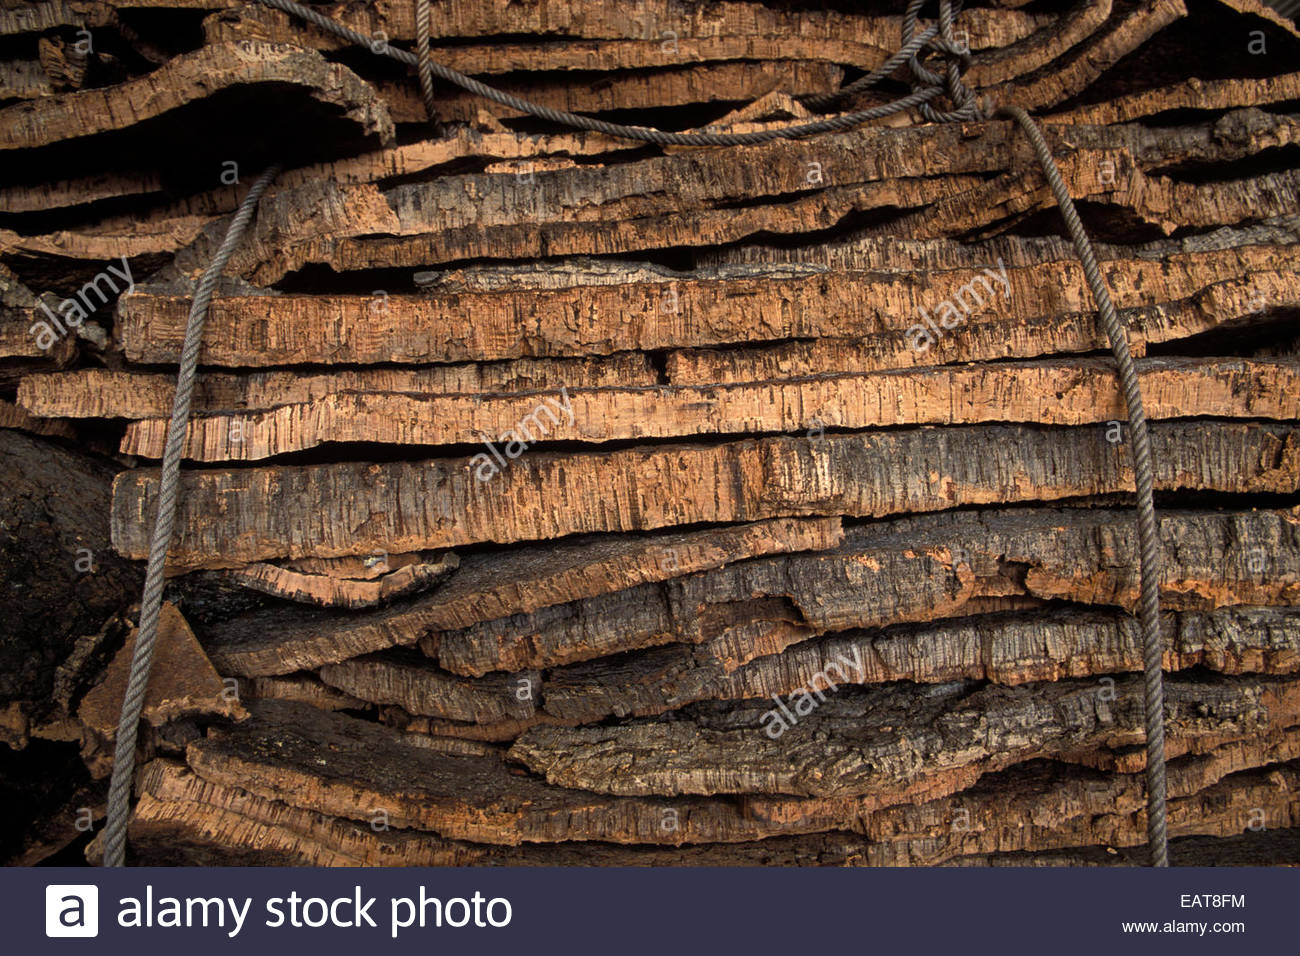 Cork oak bark is stacked at a factory and tied with rope. - Stock Image